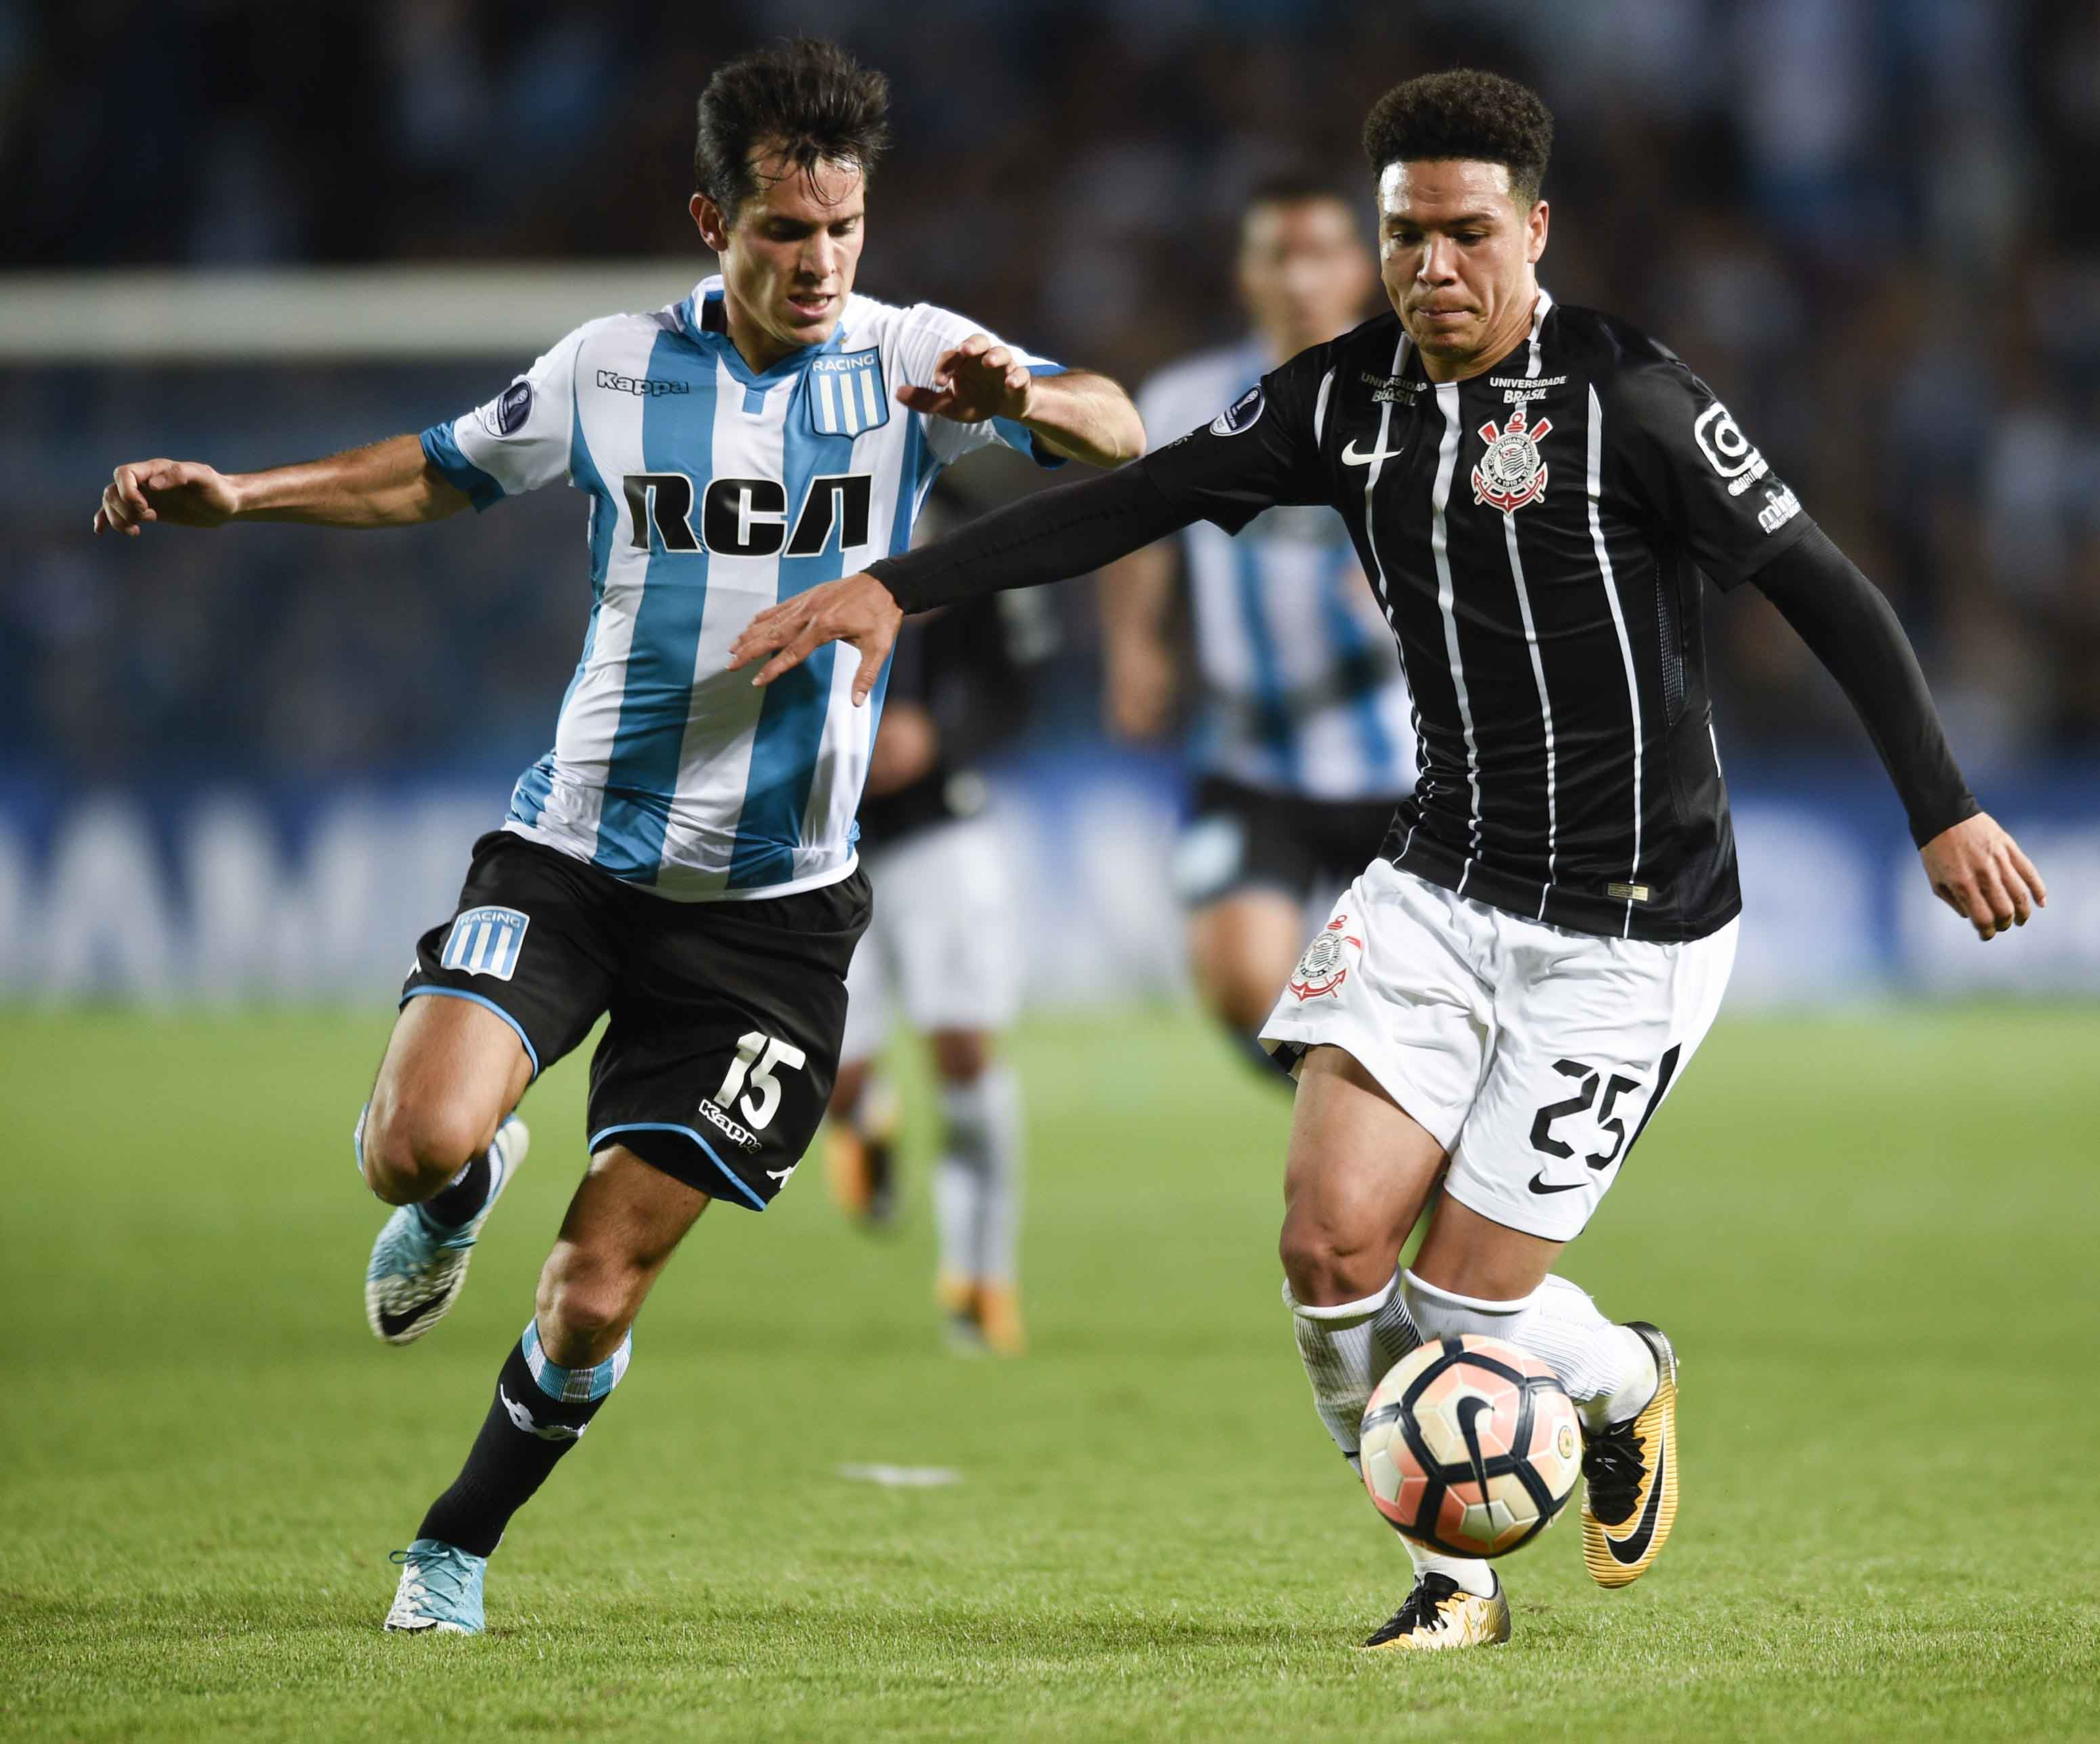 Clayson of Brazil's Corinthians (right) fights for the ball with Augusto Solari of Argentina's Racing during a Copa Sudamericana soccer match in Buenos Aires, Argentina on Wednesday.